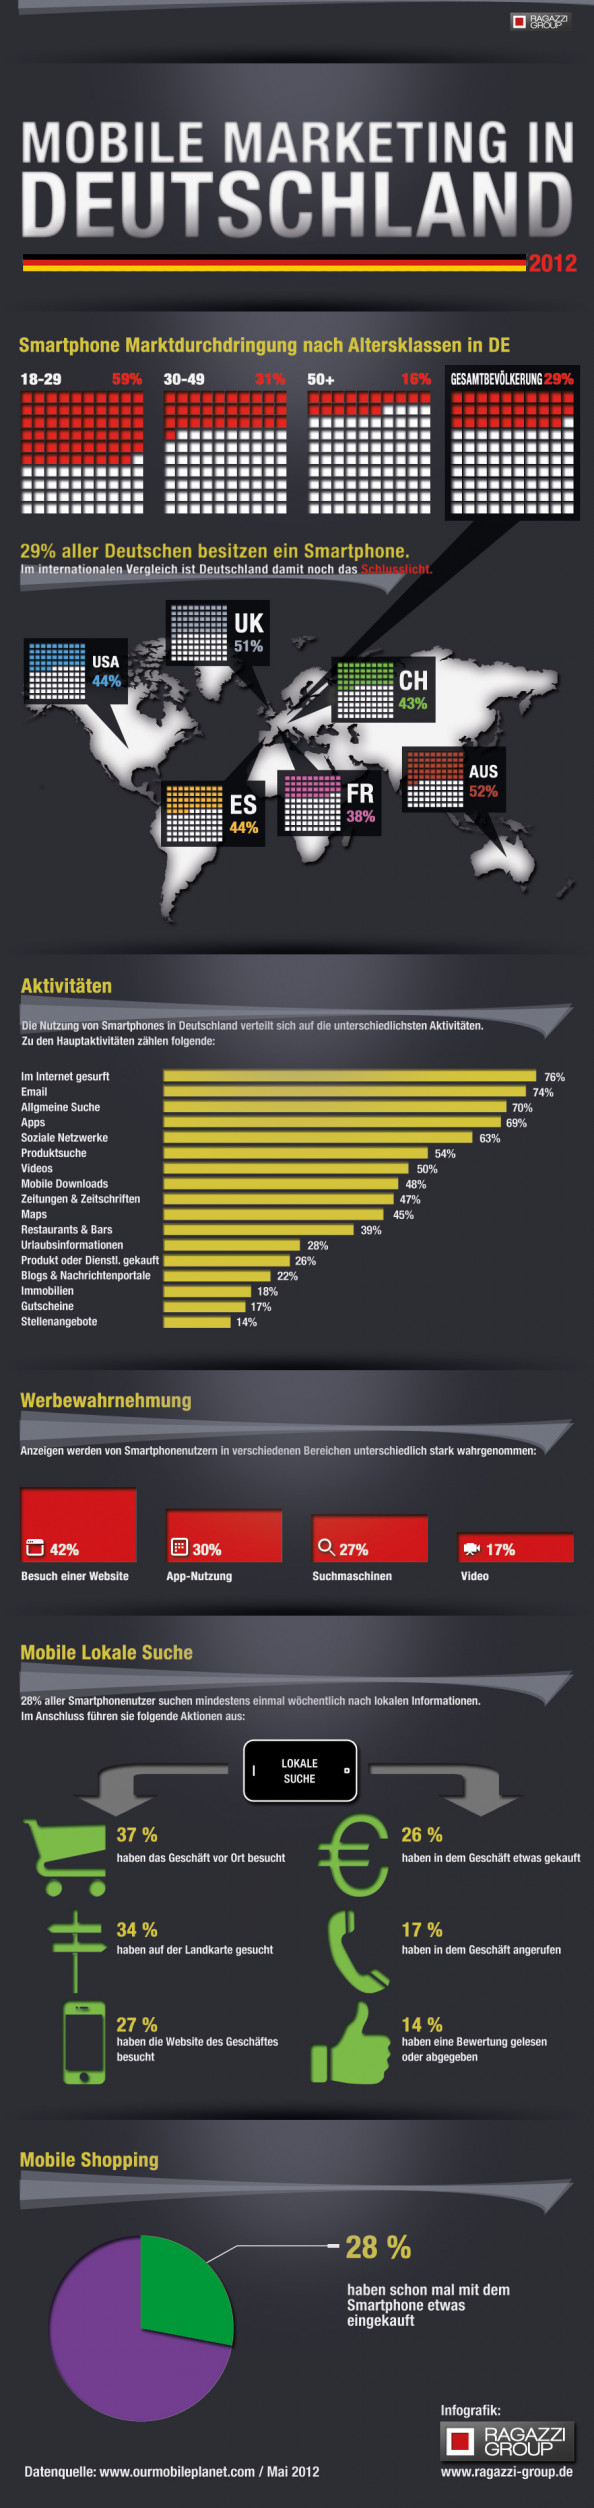 Mobile Marketing in Germany Infographic